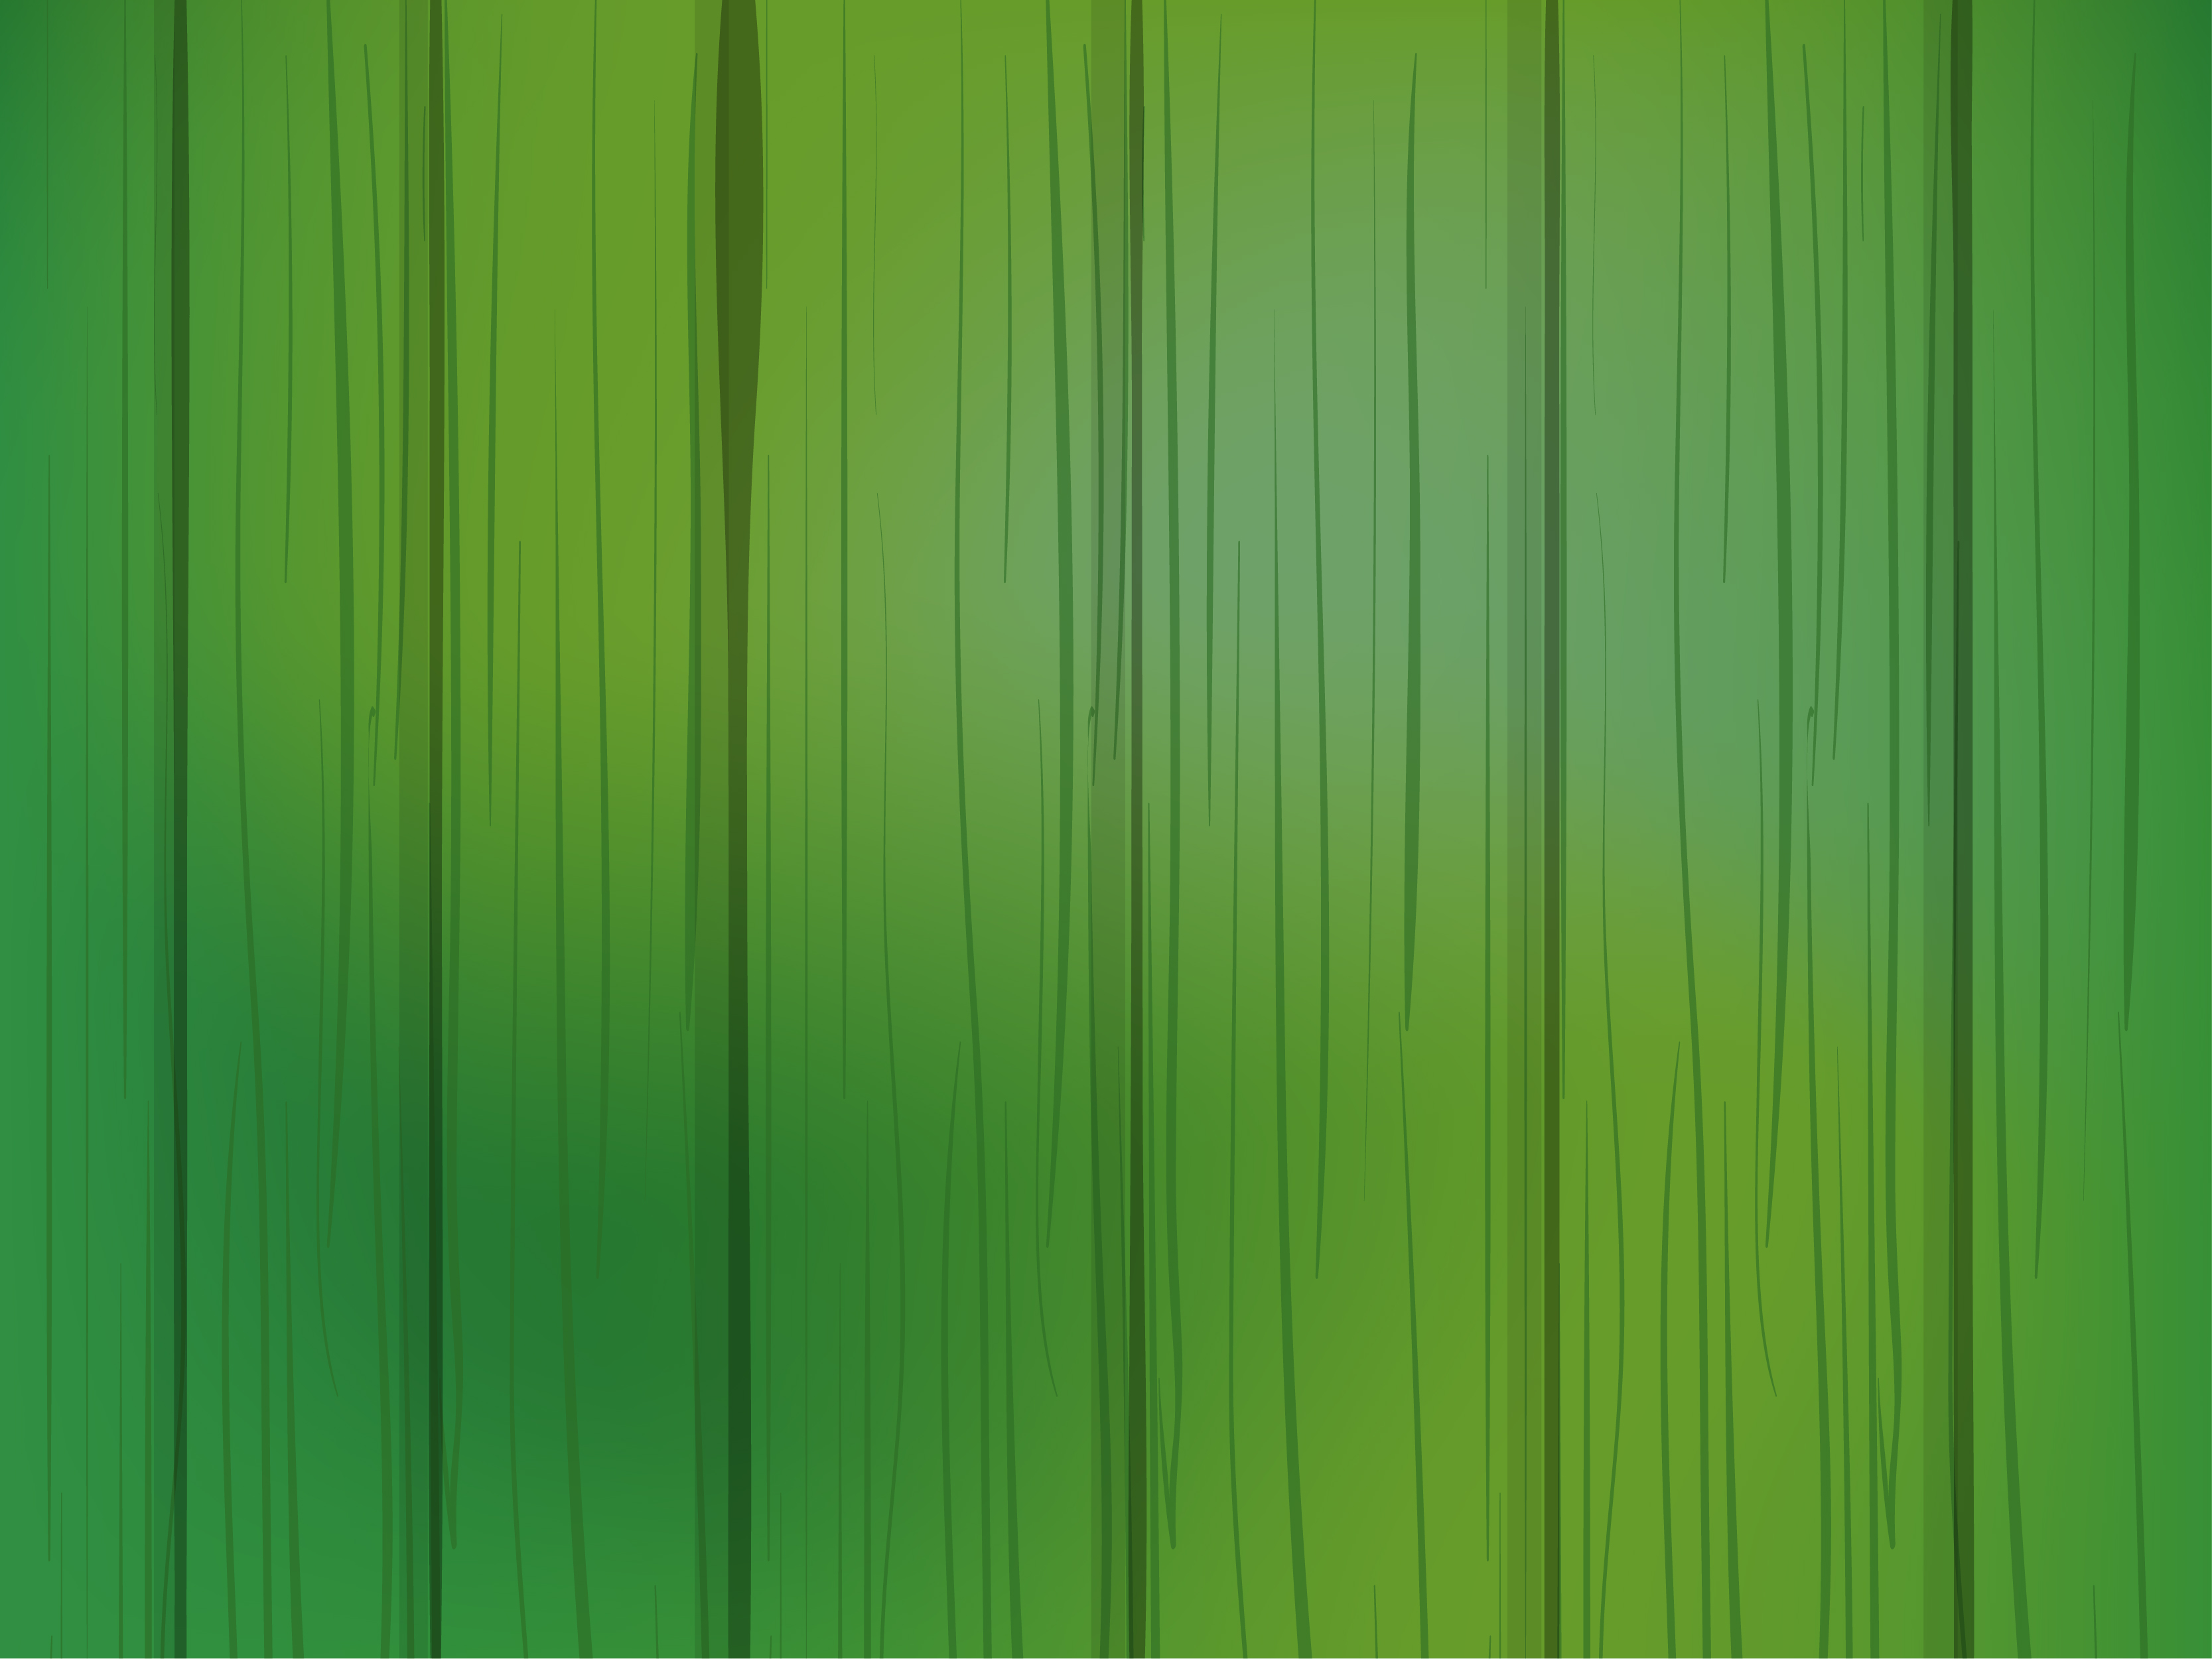 Green Wood Backgrounds Free Download